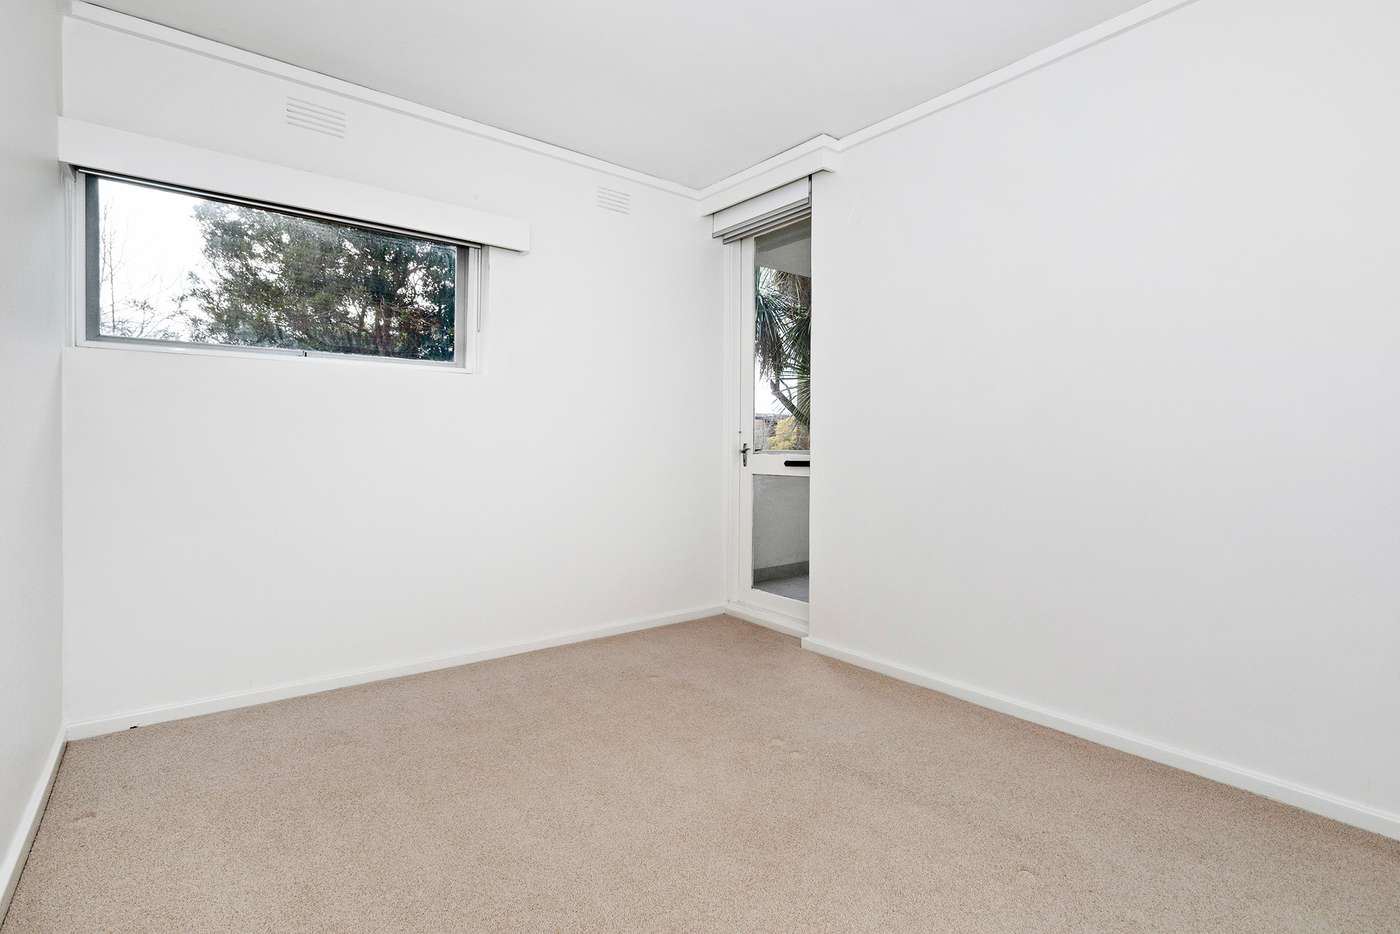 Sixth view of Homely apartment listing, 7/33 Sutherland Road, Armadale VIC 3143